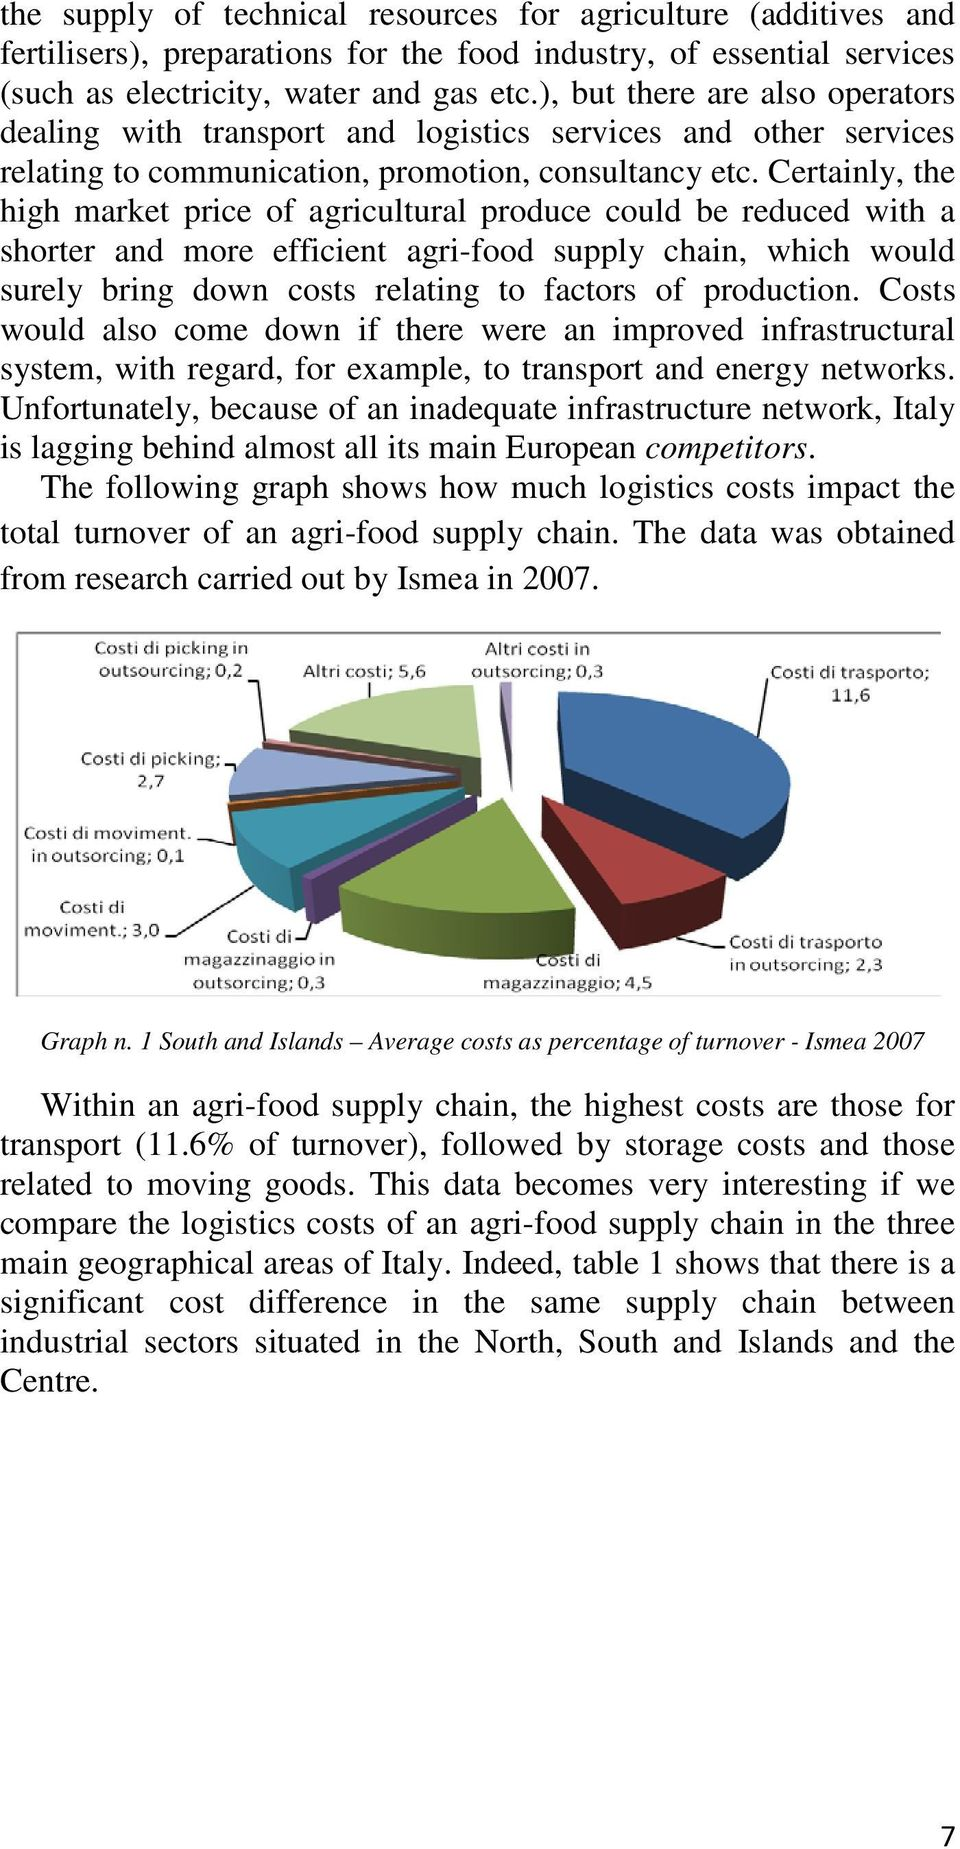 Certainly, the high market price of agricultural produce could be reduced with a shorter and more efficient agri-food supply chain, which would surely bring down costs relating to factors of